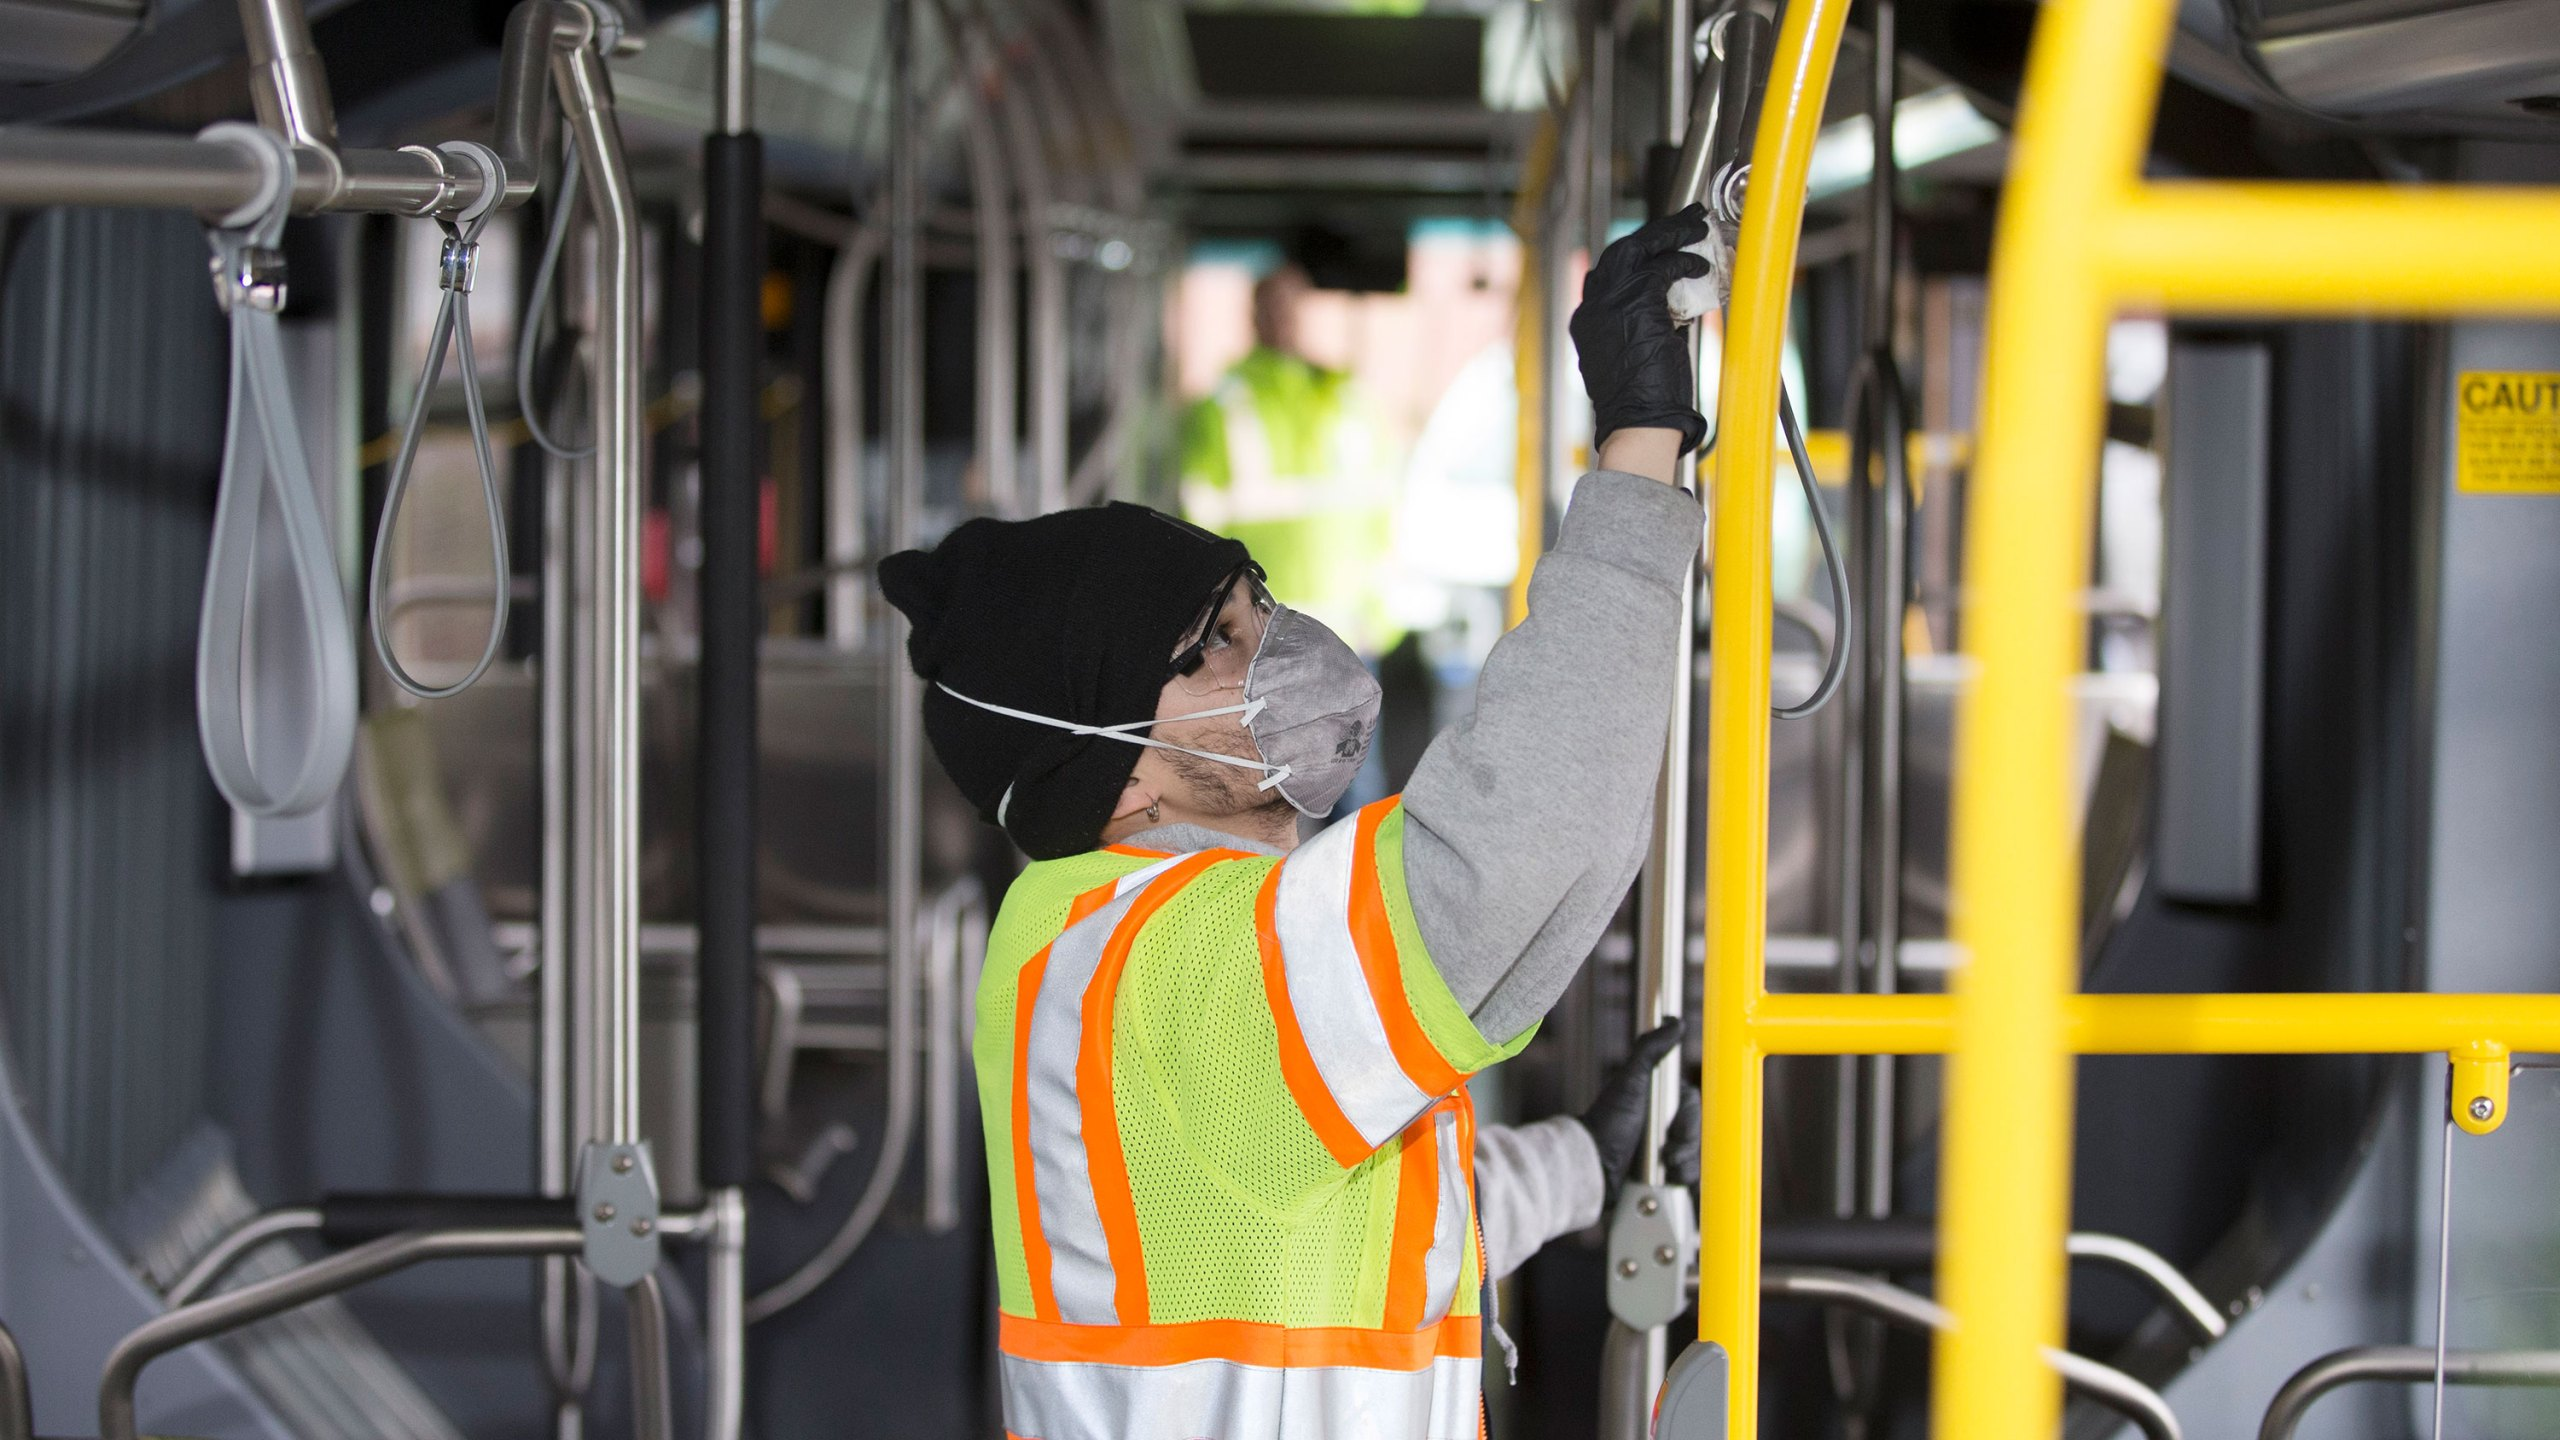 A utility service worker for King County Metro Transit, deep cleans a bus on March 3, 2020, in Seattle, Washington. (Karen Ducey/Getty Images)